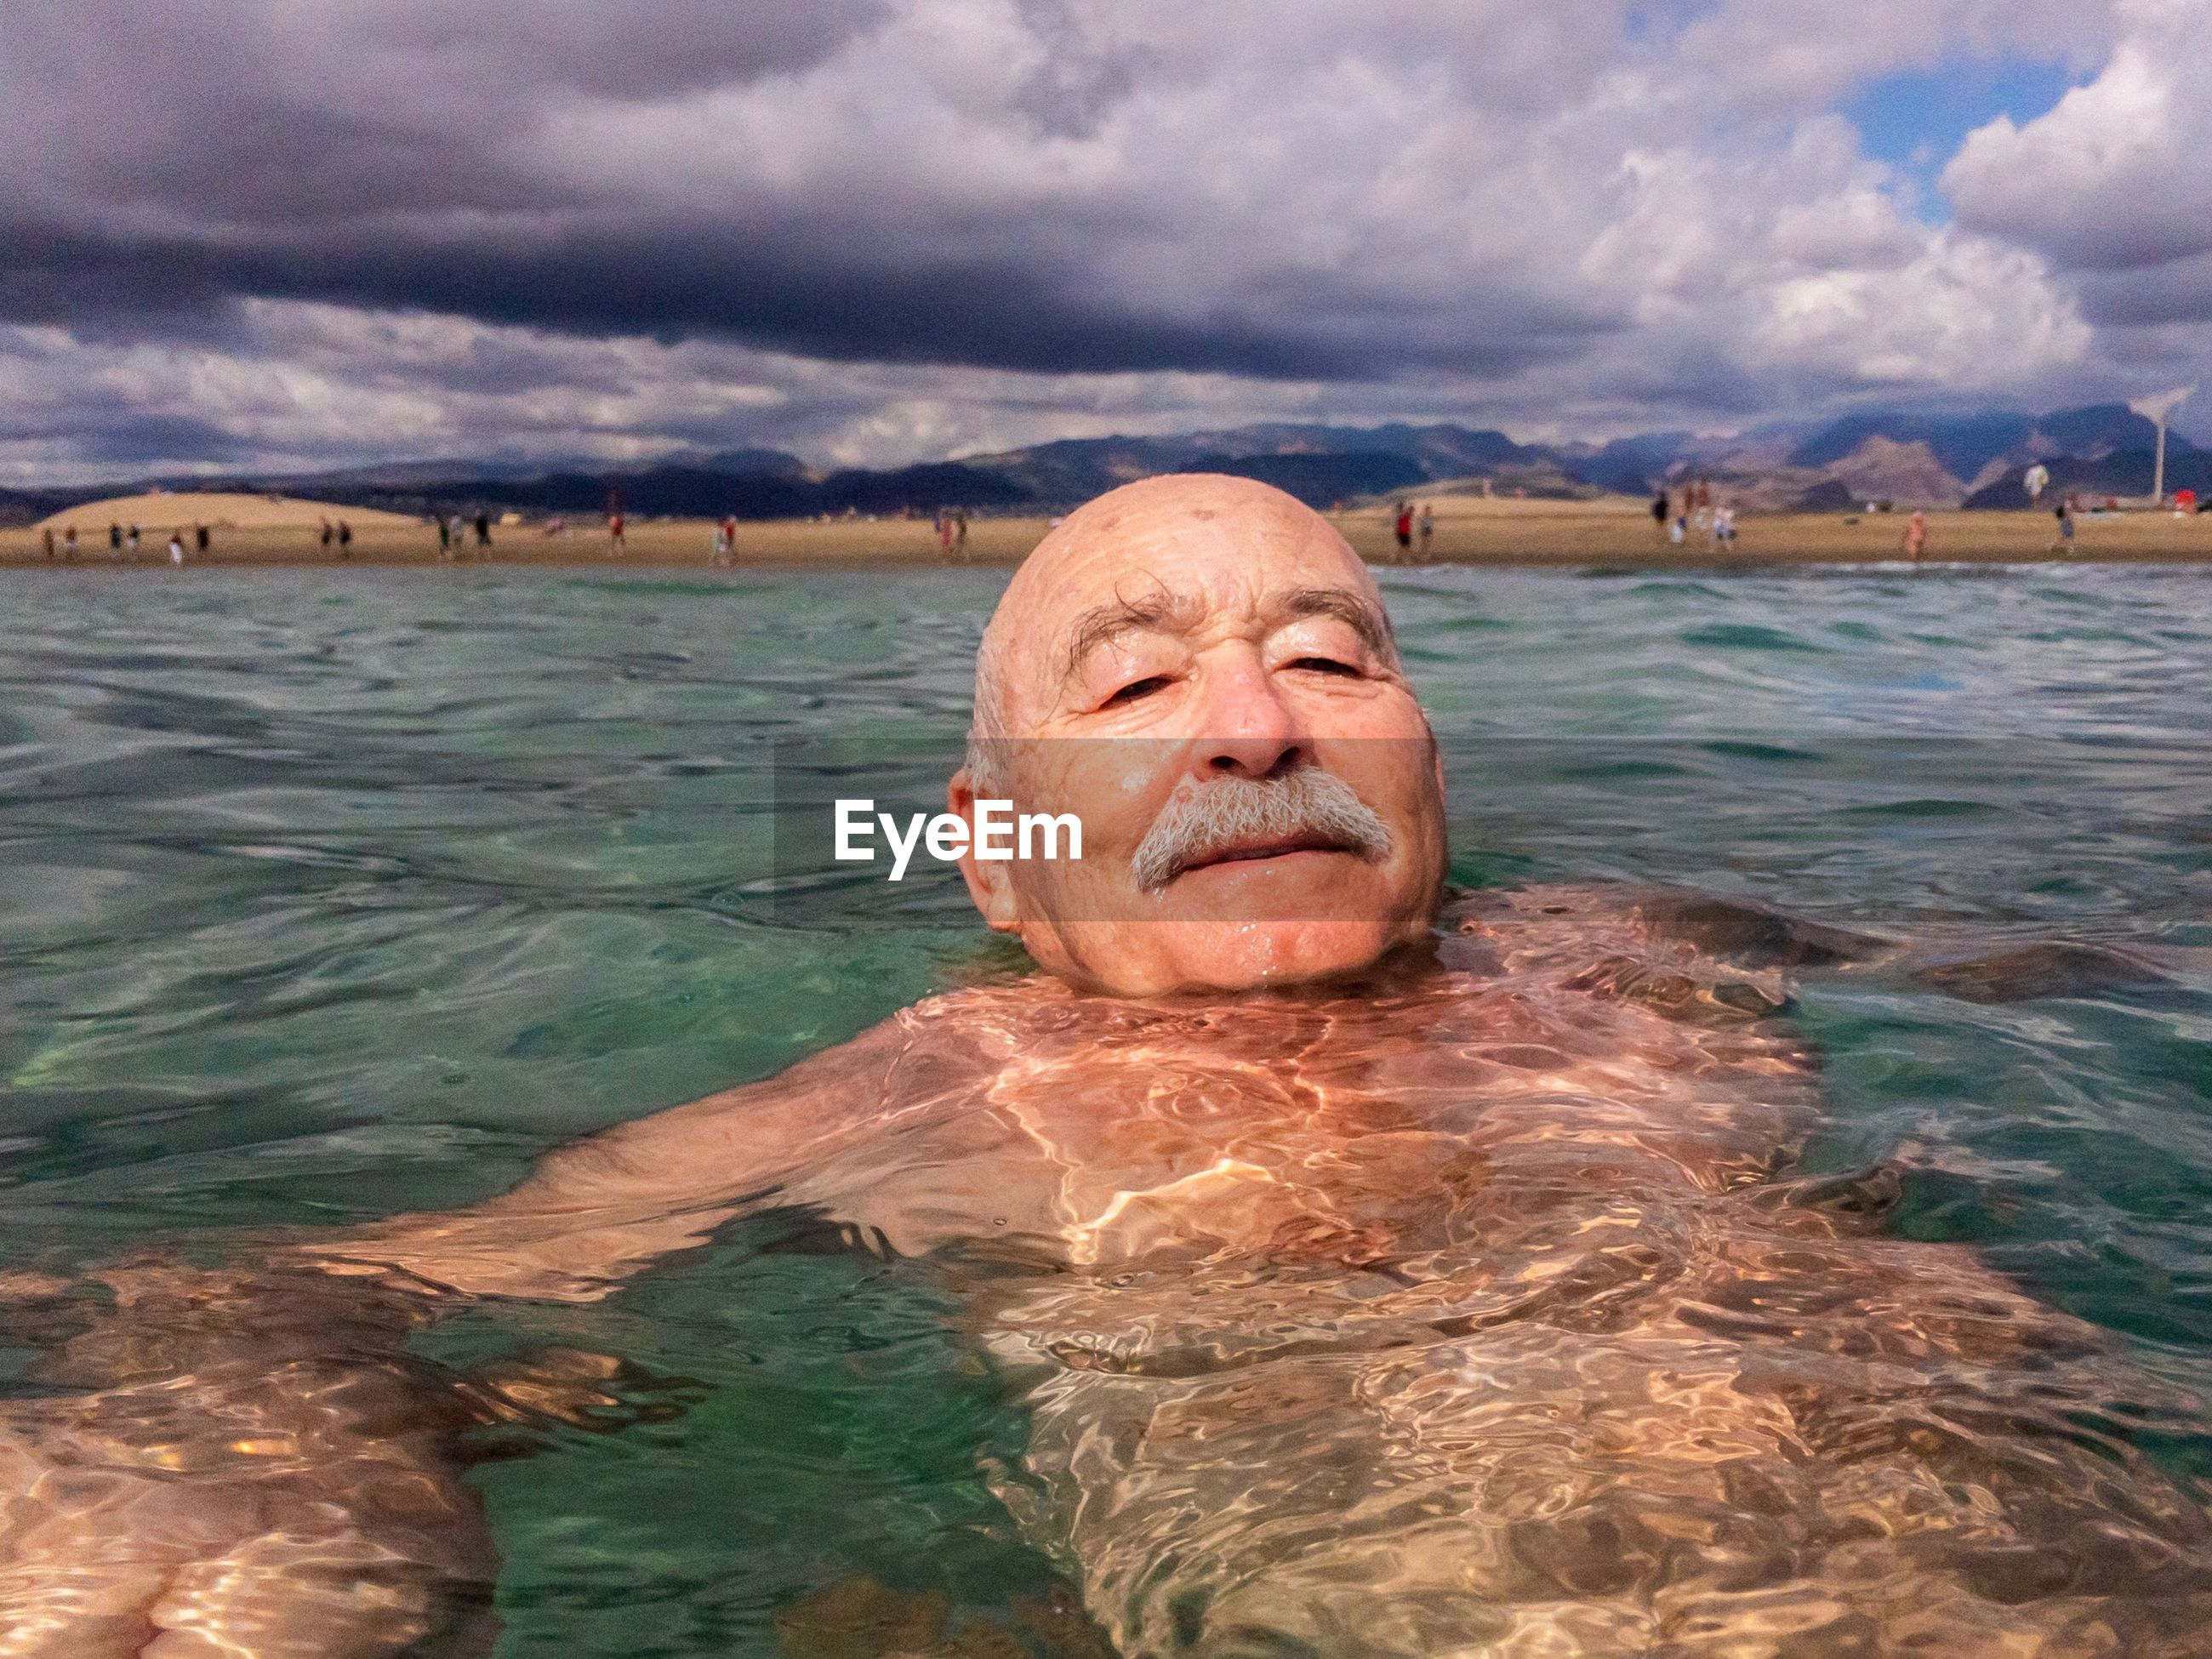 Portrait of man swimming in sea against cloudy sky